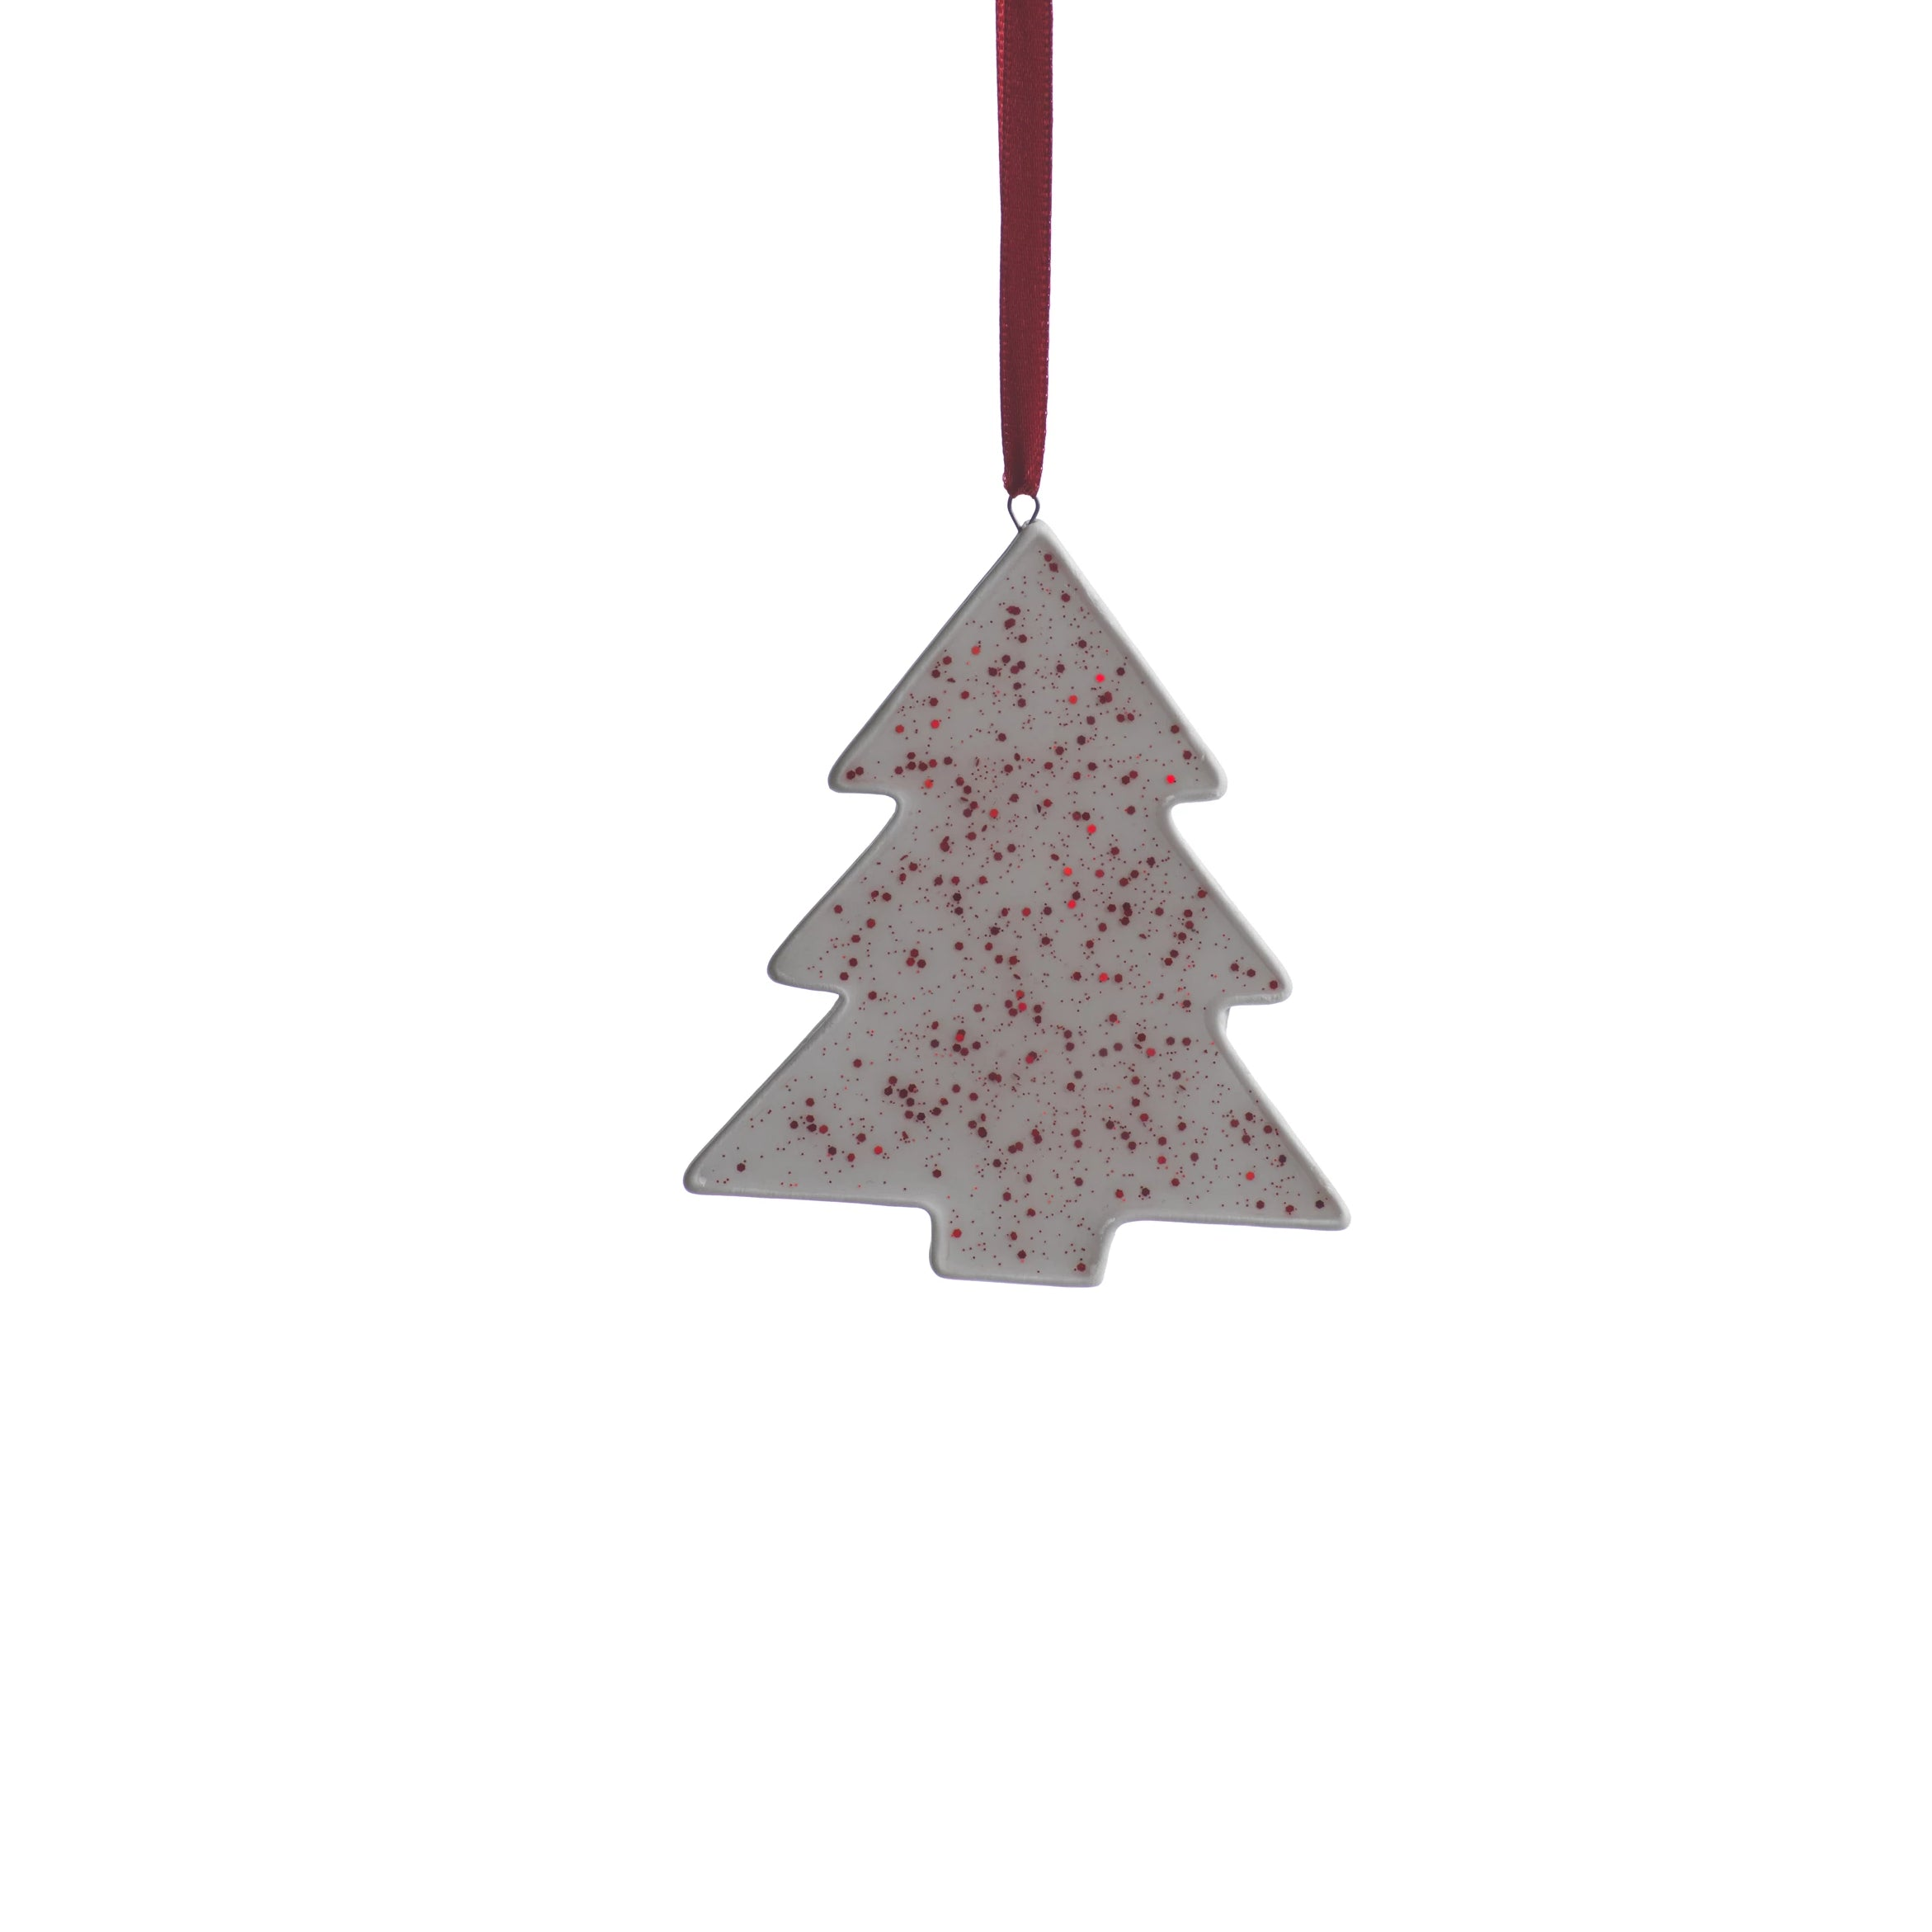 Speckled Tree Ornament - Red - CARLYLE AVENUE